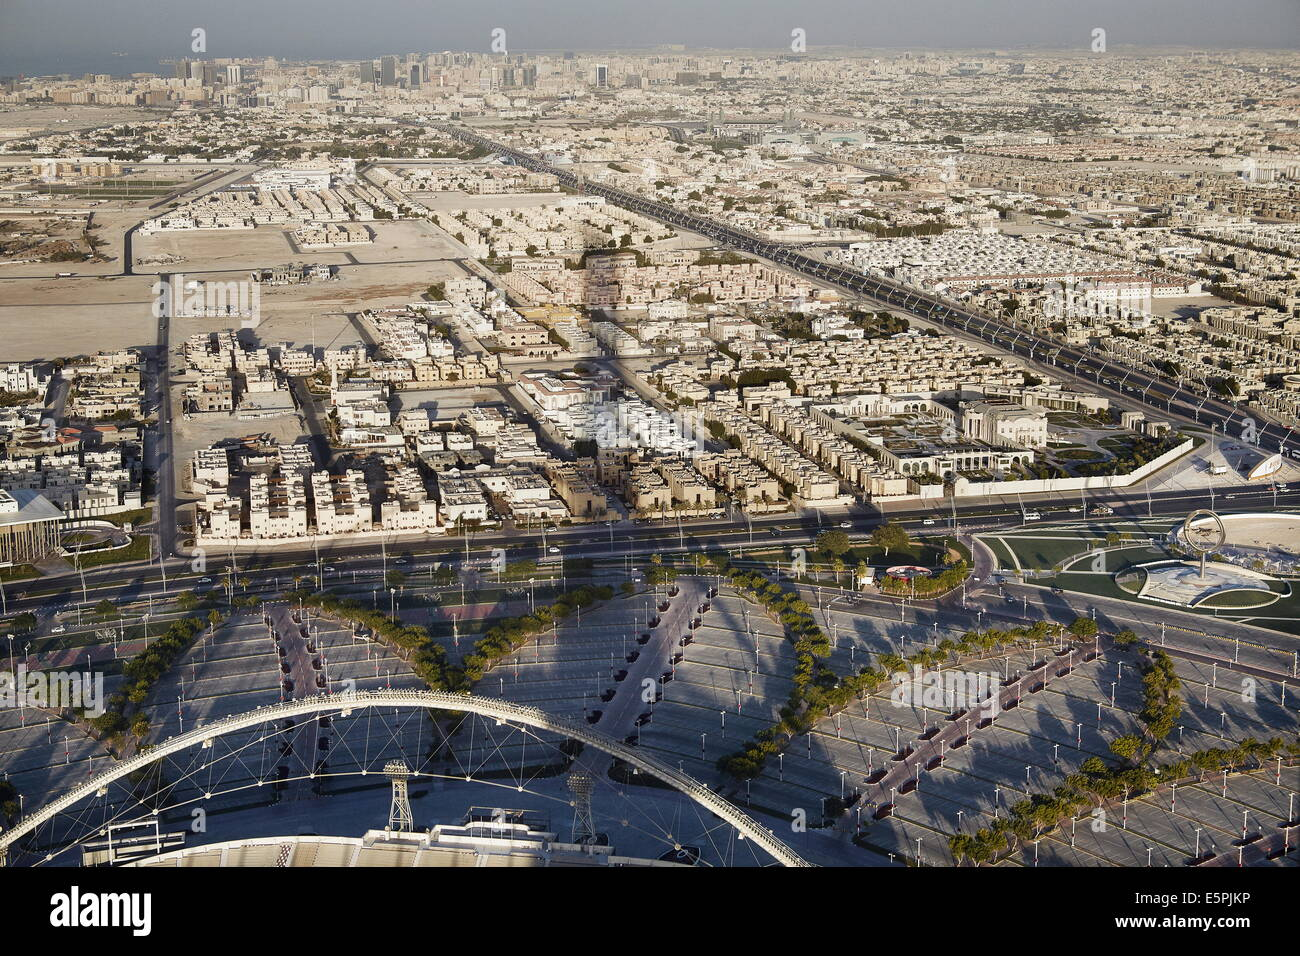 Aerial view of Doha from the Aspire Tower viewing platform, Doha, Qatar, Middle East - Stock Image